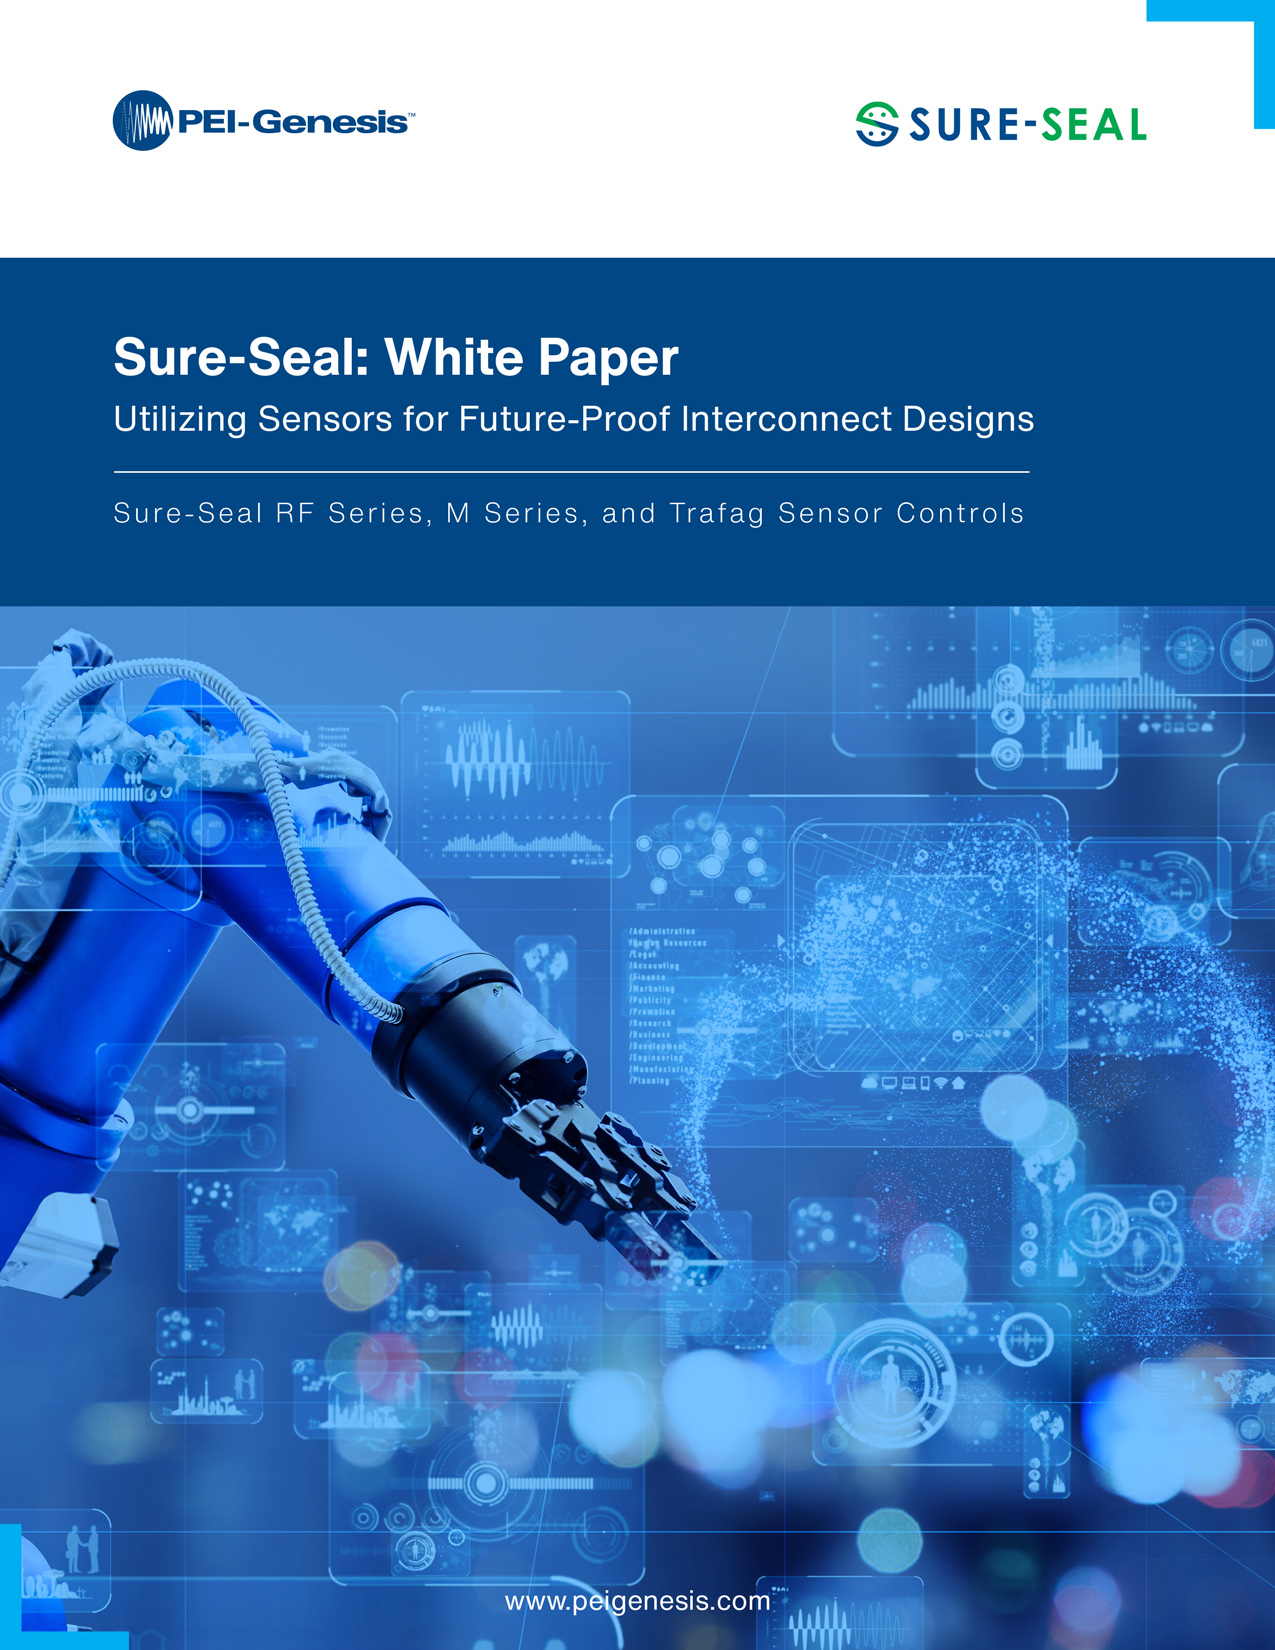 Sure-Seal: Utilizing Sensors for Future-Proof Interconnect Designs White Paper